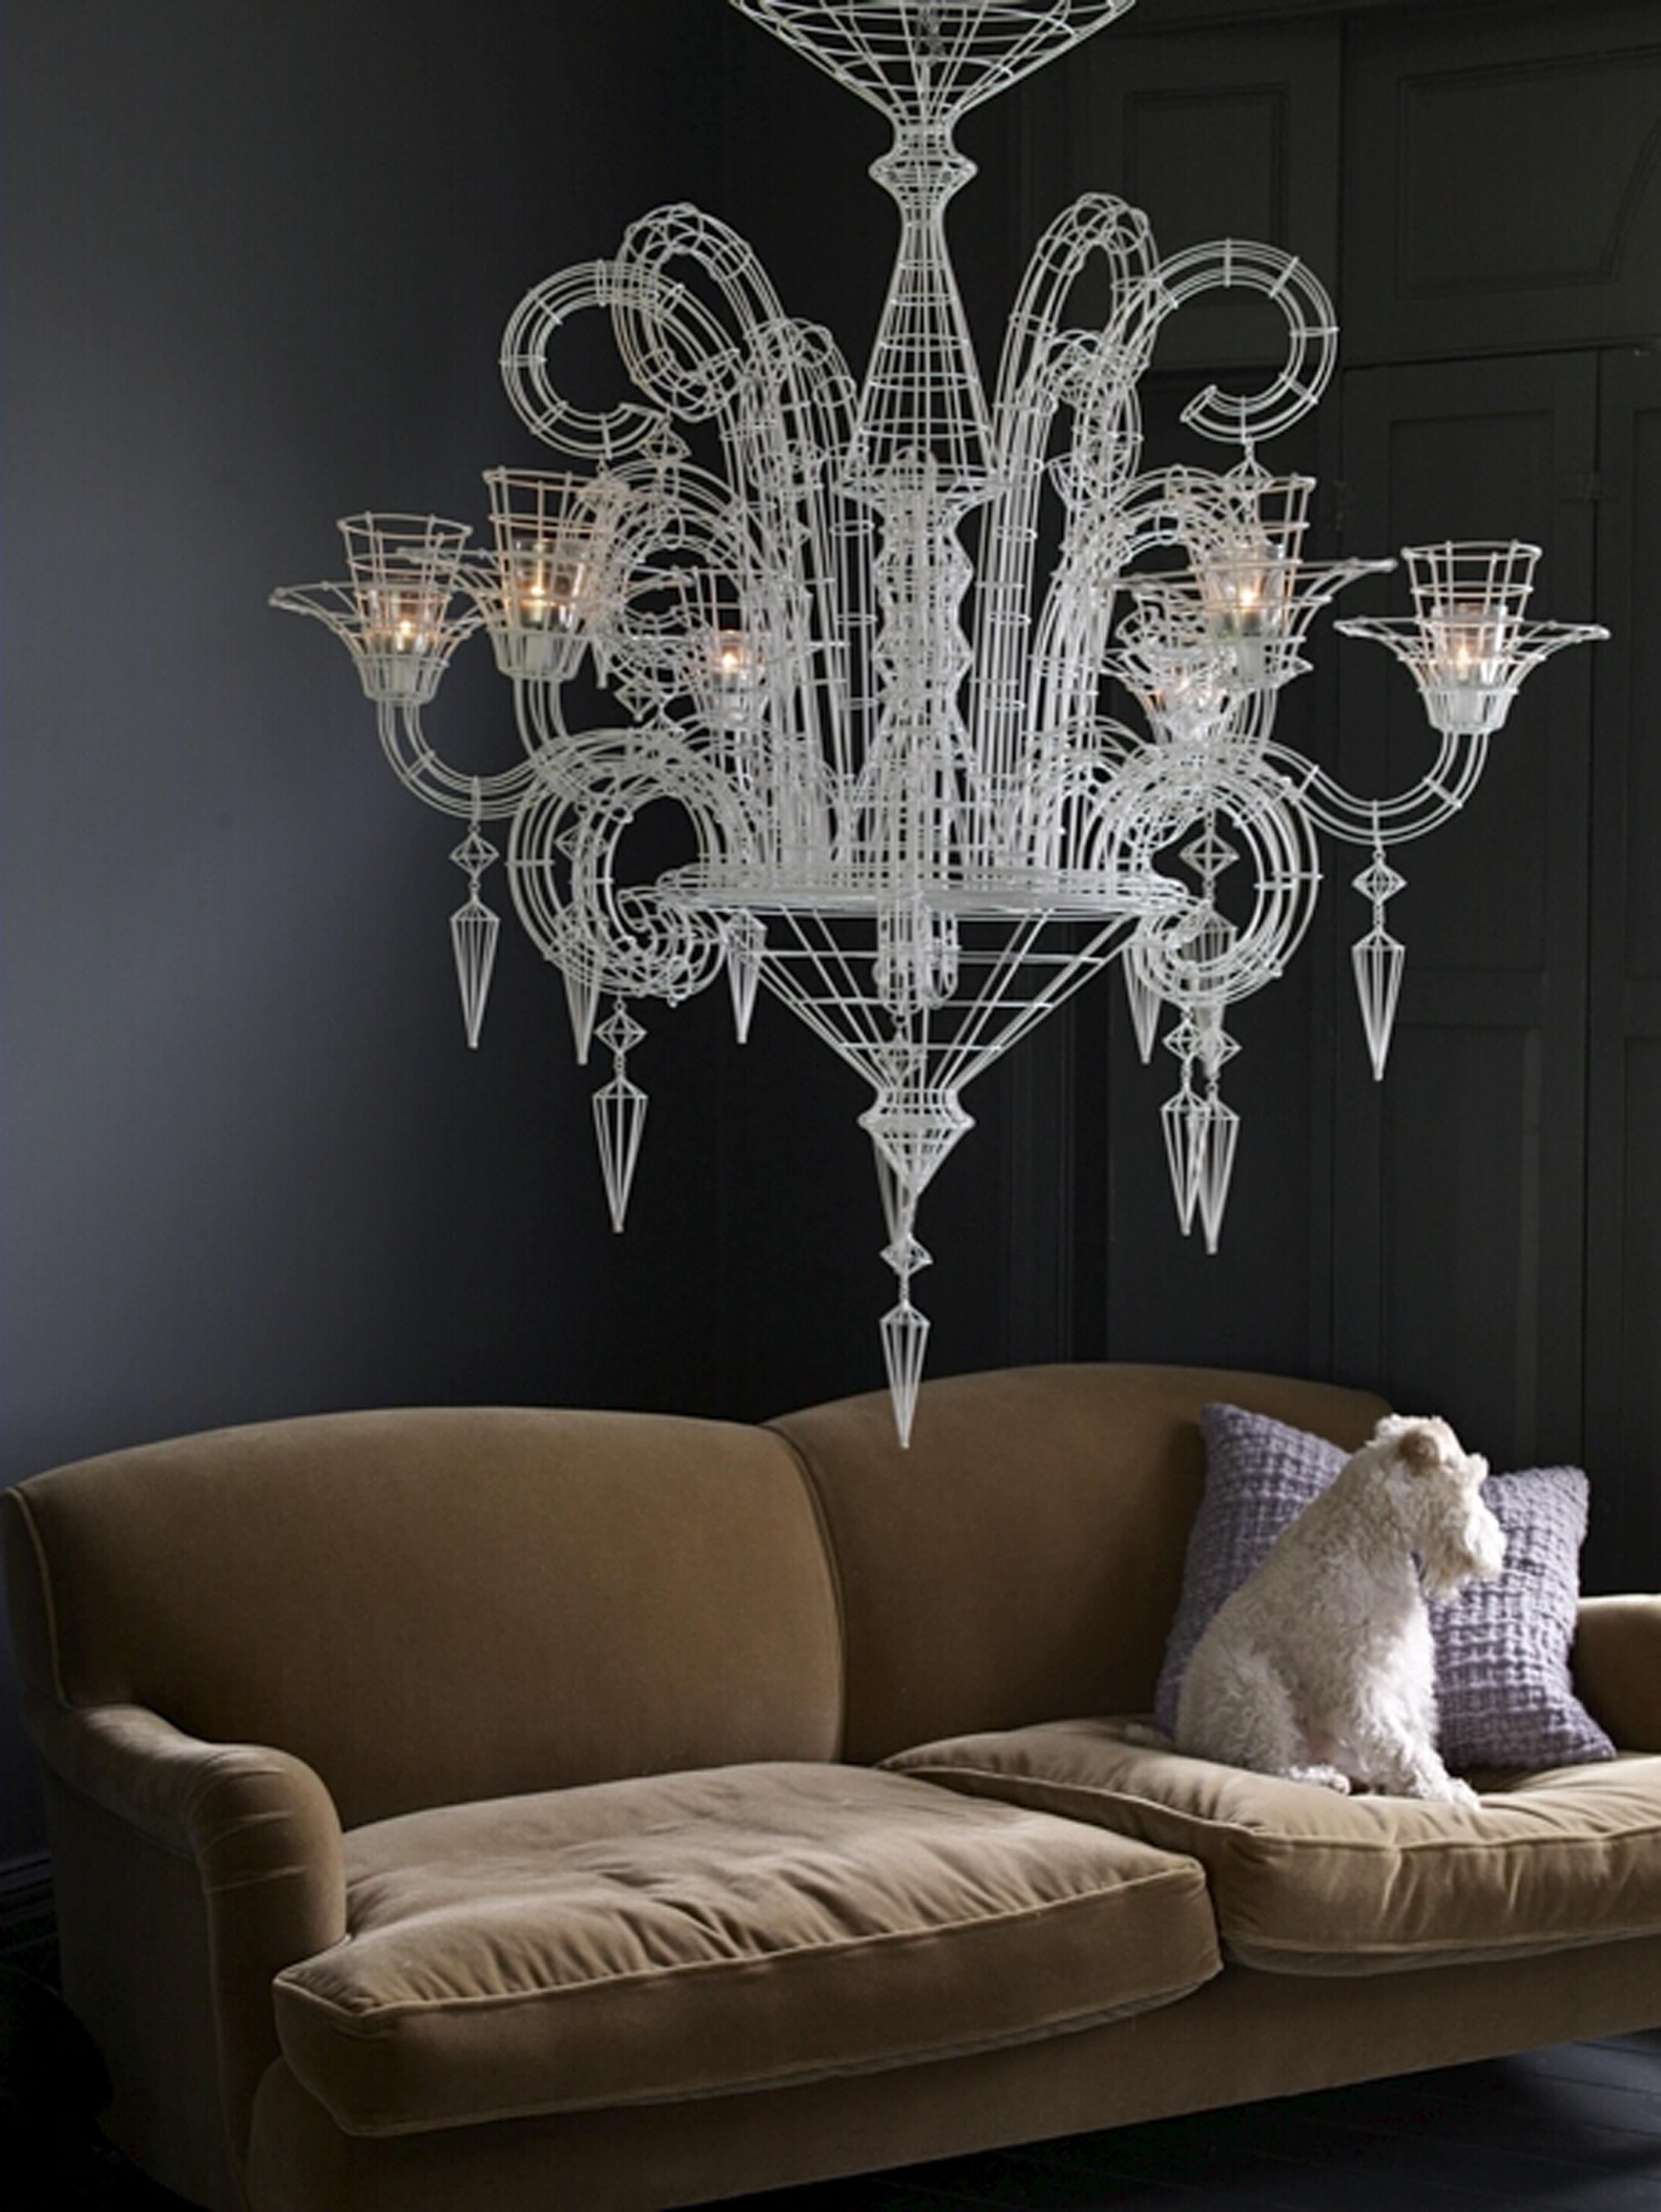 Love your chandeliers